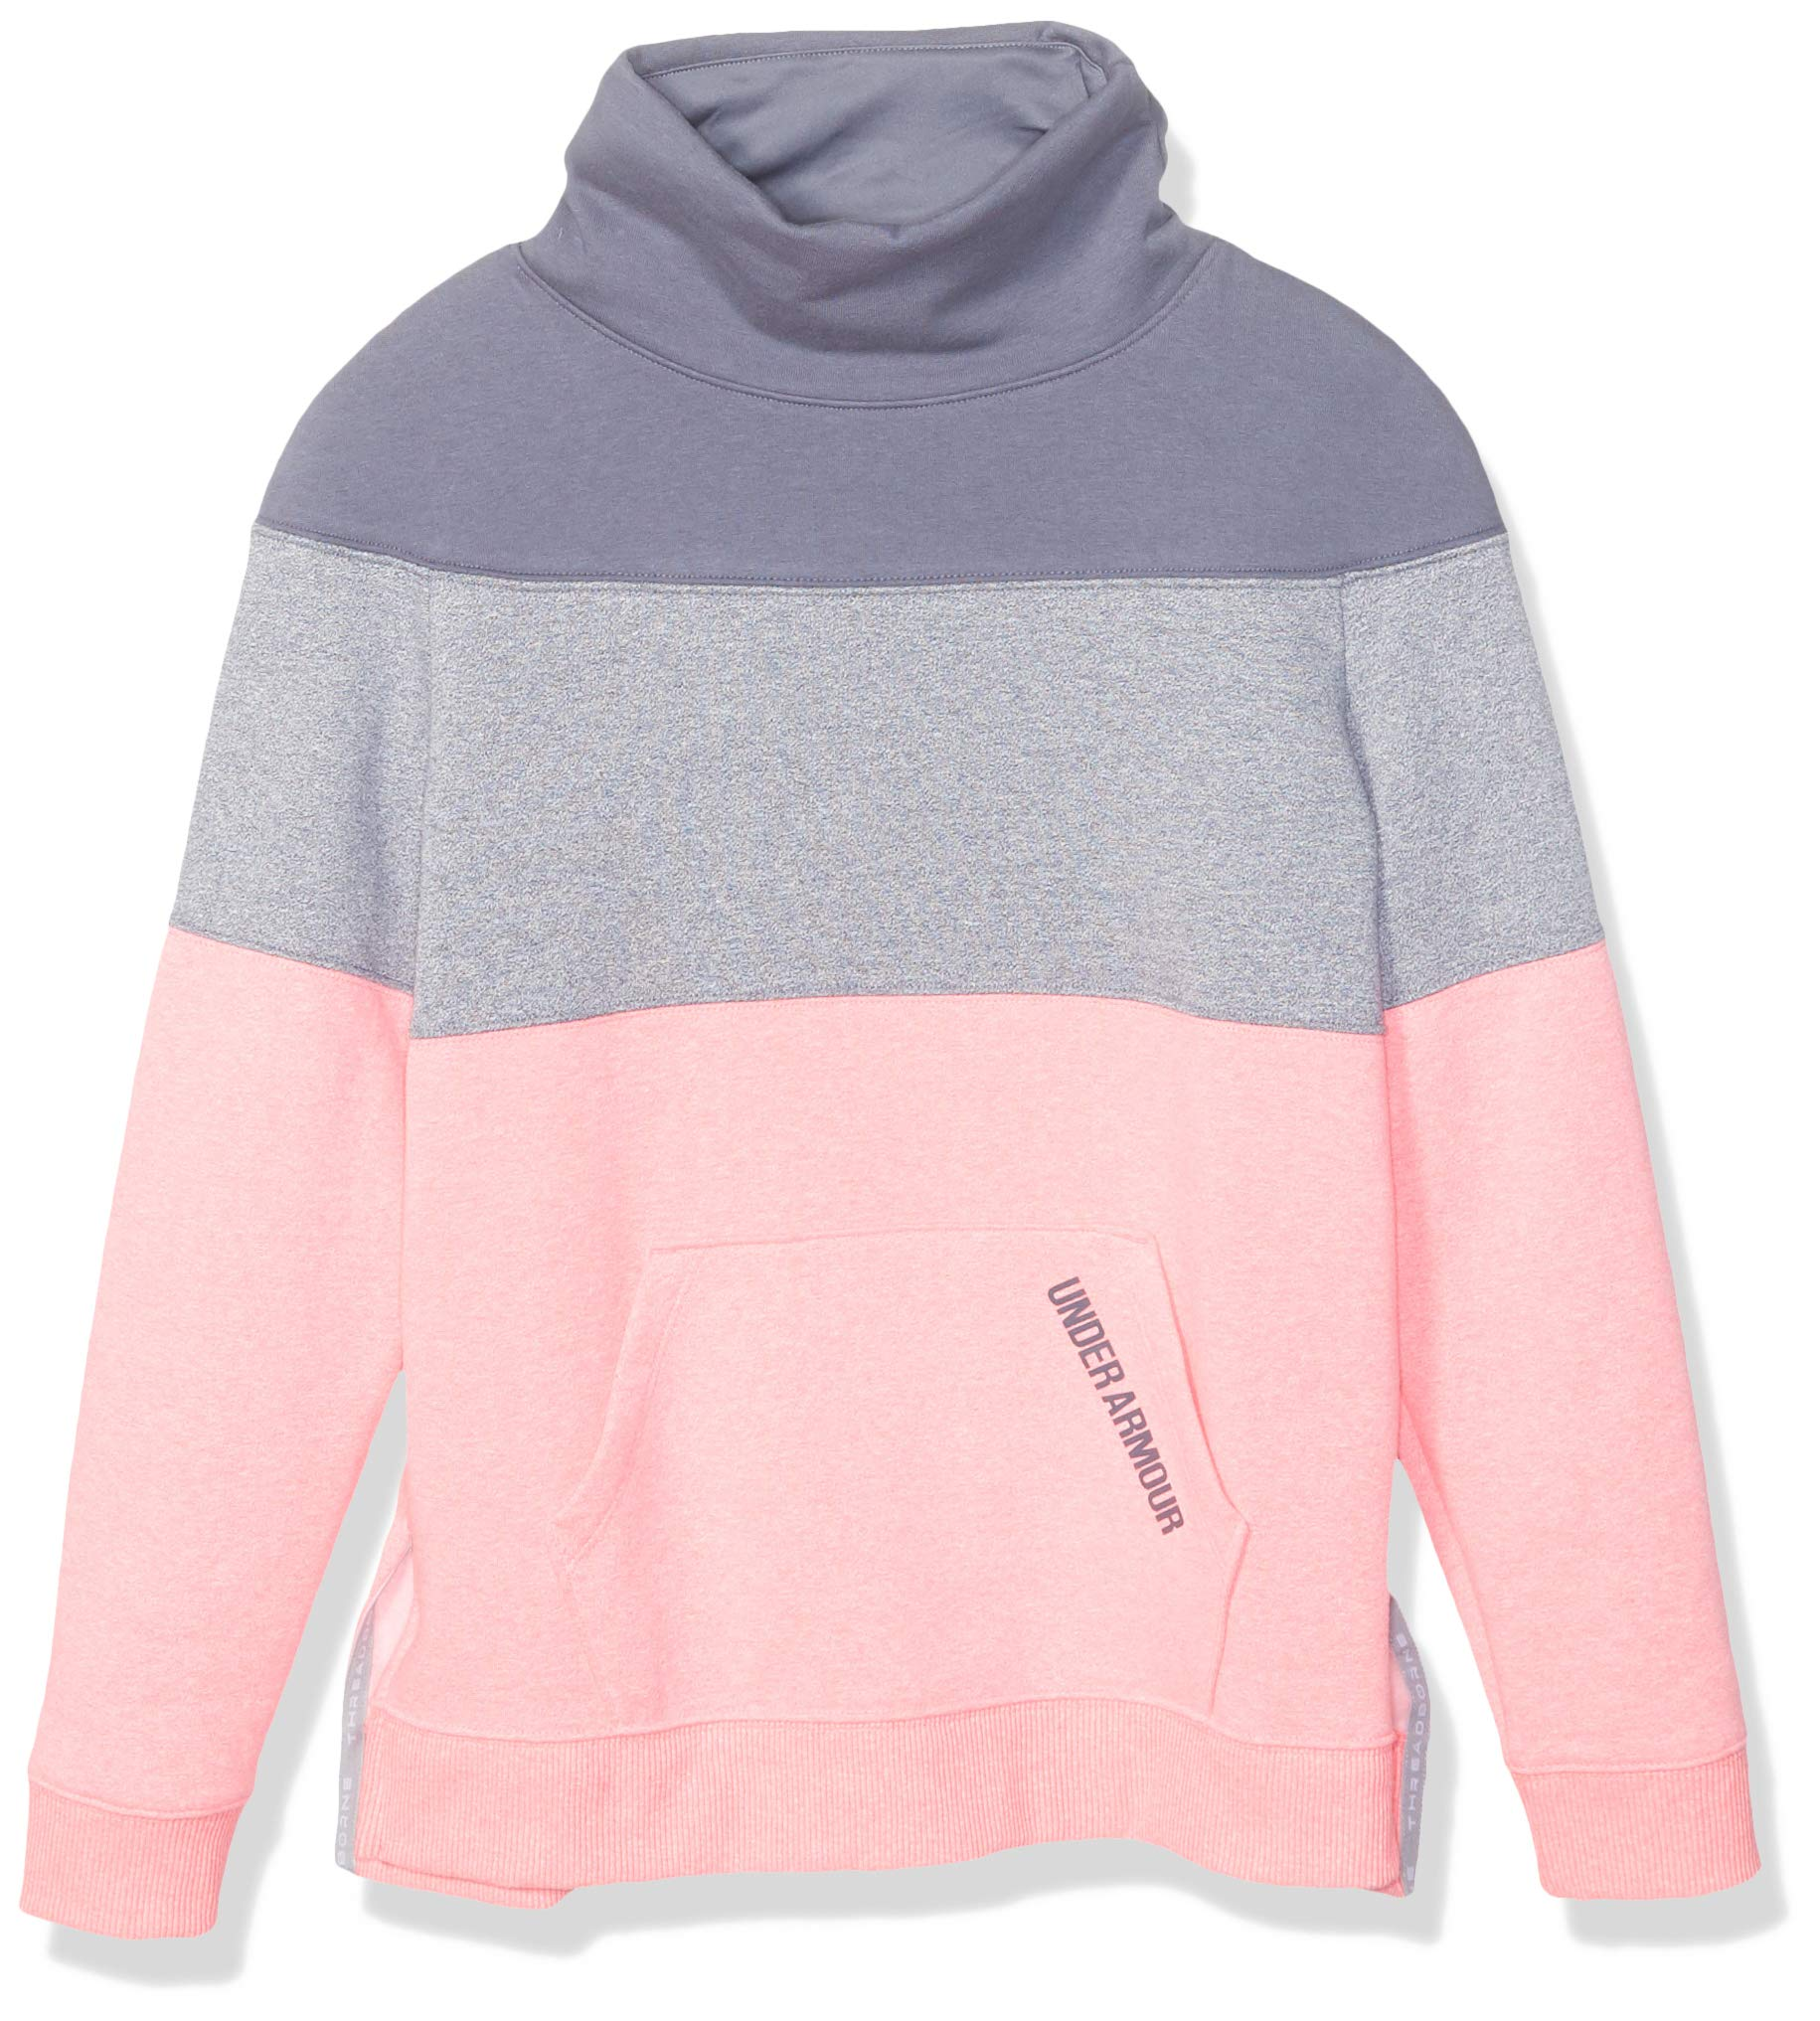 Under Armour Girls' Threadborne Fleece Slouchy Crew,Penta Pink (975)/Apollo Gray, Youth X-Small